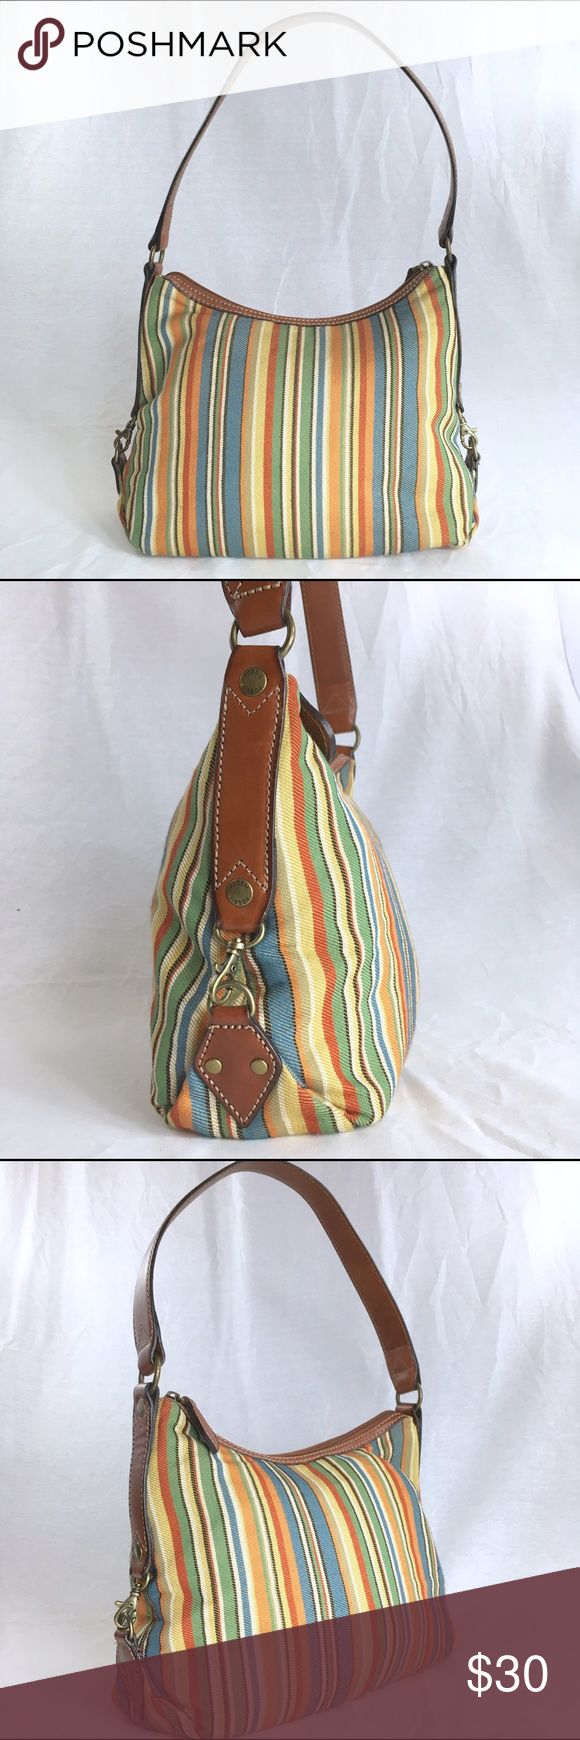 FOSSIL Striped Fabric Leather Trim Shoulder Hobo This vintage fossil bag is in very good condition. It has been very gently loved. The shoulder strap measures 21 inches. Fossil Bags Hobos